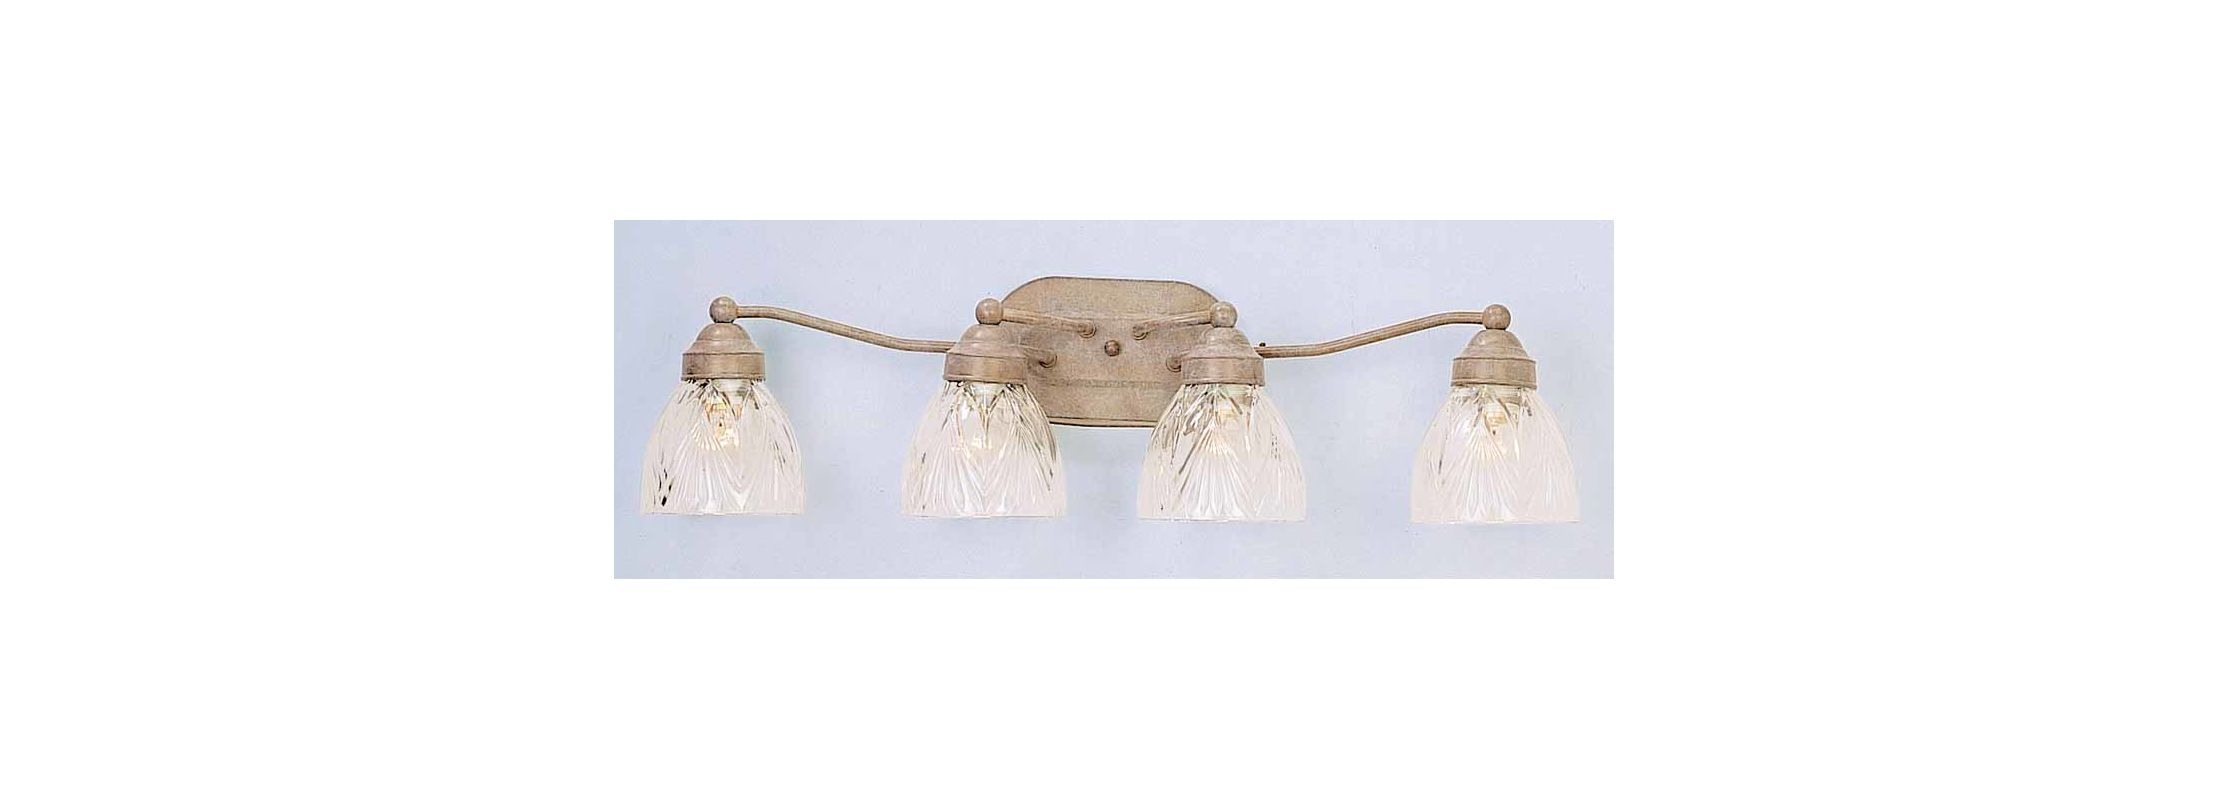 "Volume Lighting V1644 4 Light 26.25"" Width Bathroom Vanity Light"